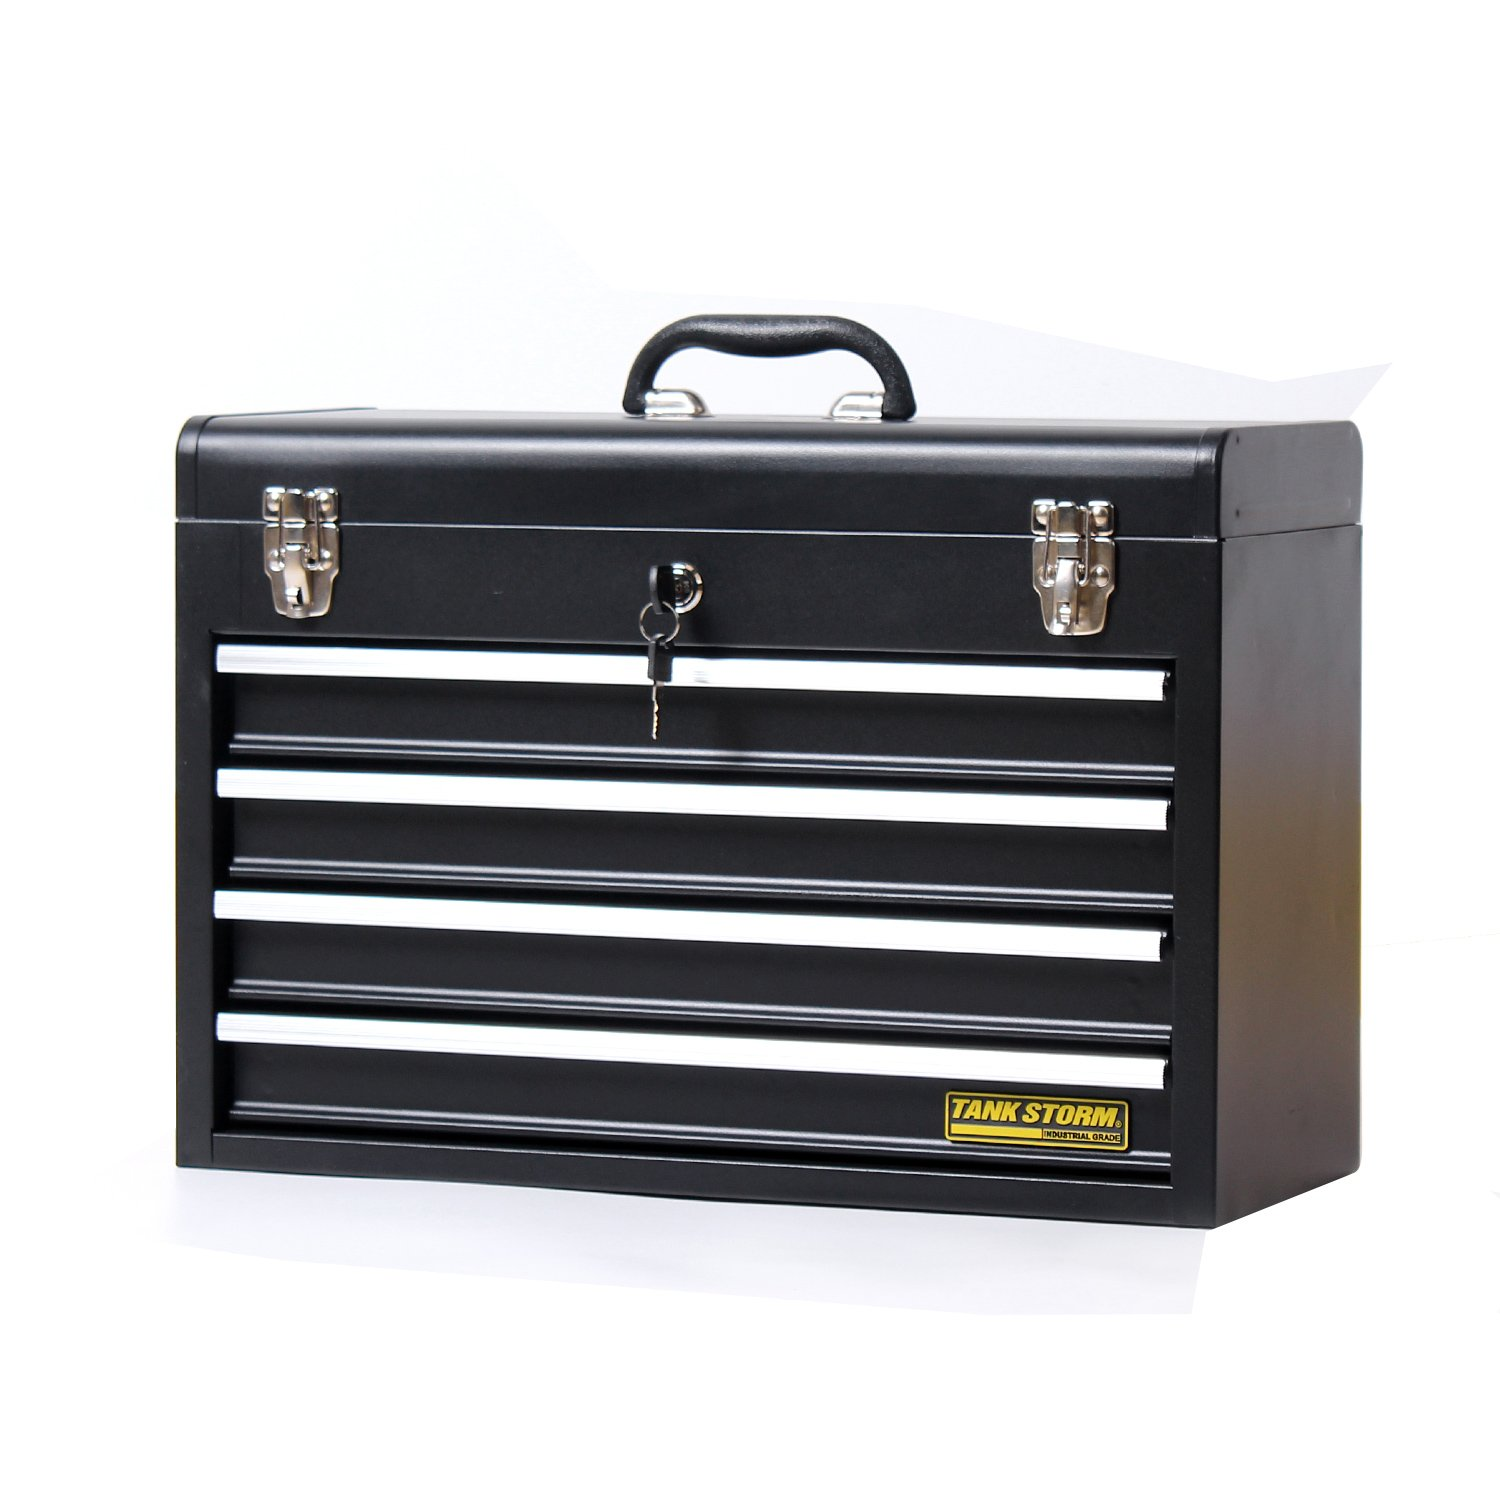 TANKSTORM Portable Steel Tool Chest with Drawers,20.6'' 4-Drawer Box Storage Organizer Cabinet Metal Toolbox,Black(X4)